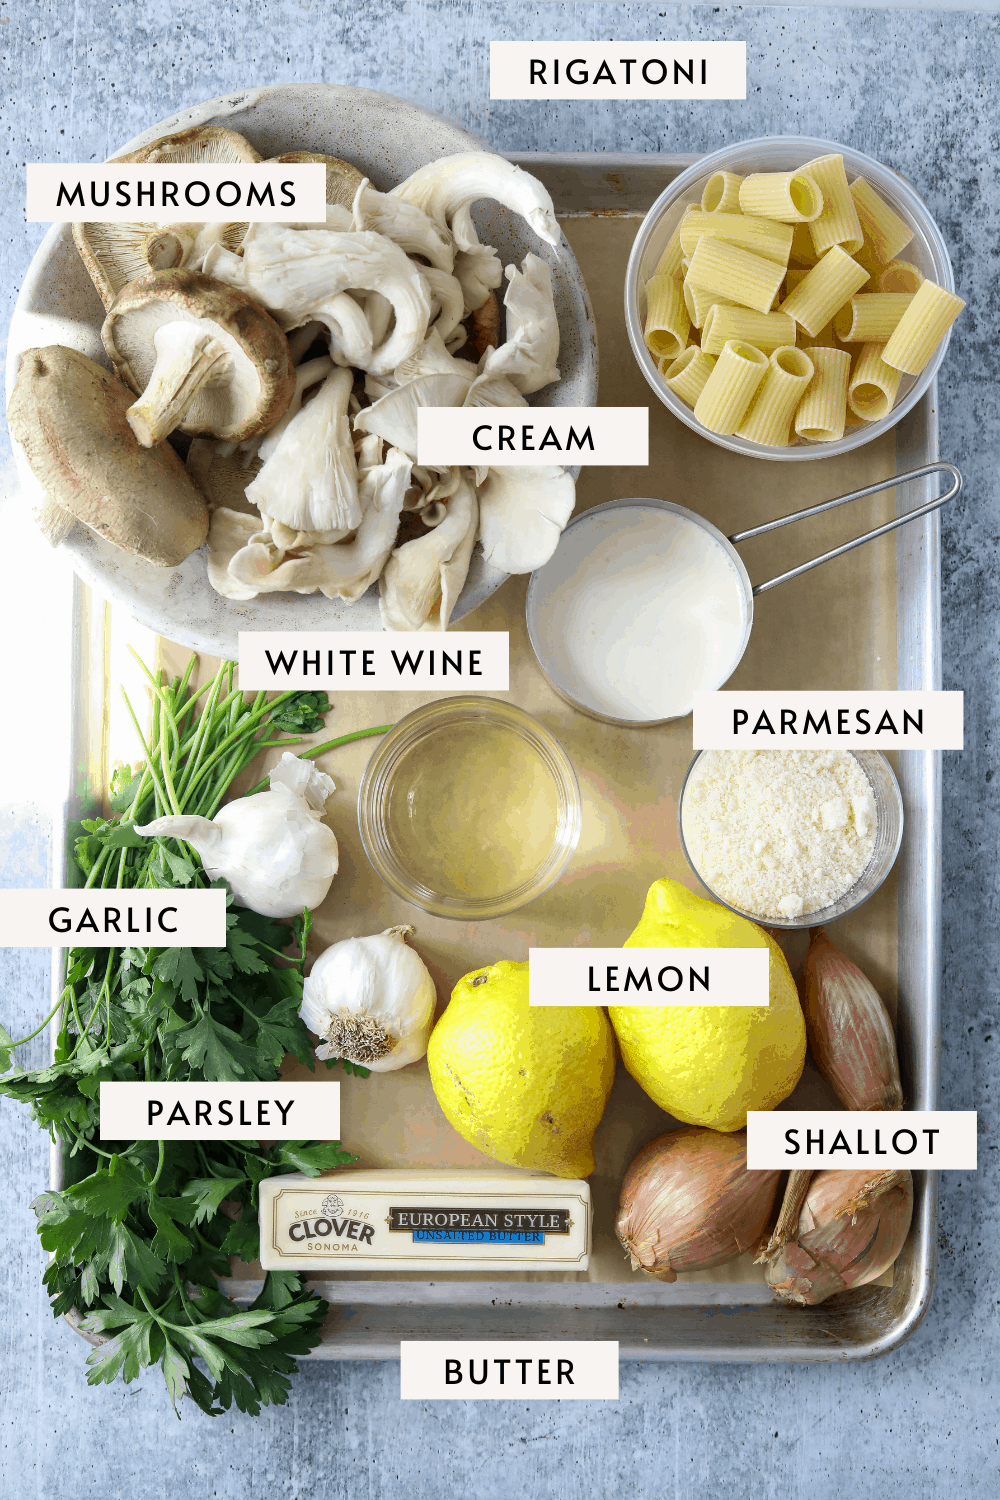 INDIVIDUAL RECIPE INGREDIENTS ON A BAKING TRAY: RIGATONI, MUSHROOMS, CREAM, GARLIC ETC